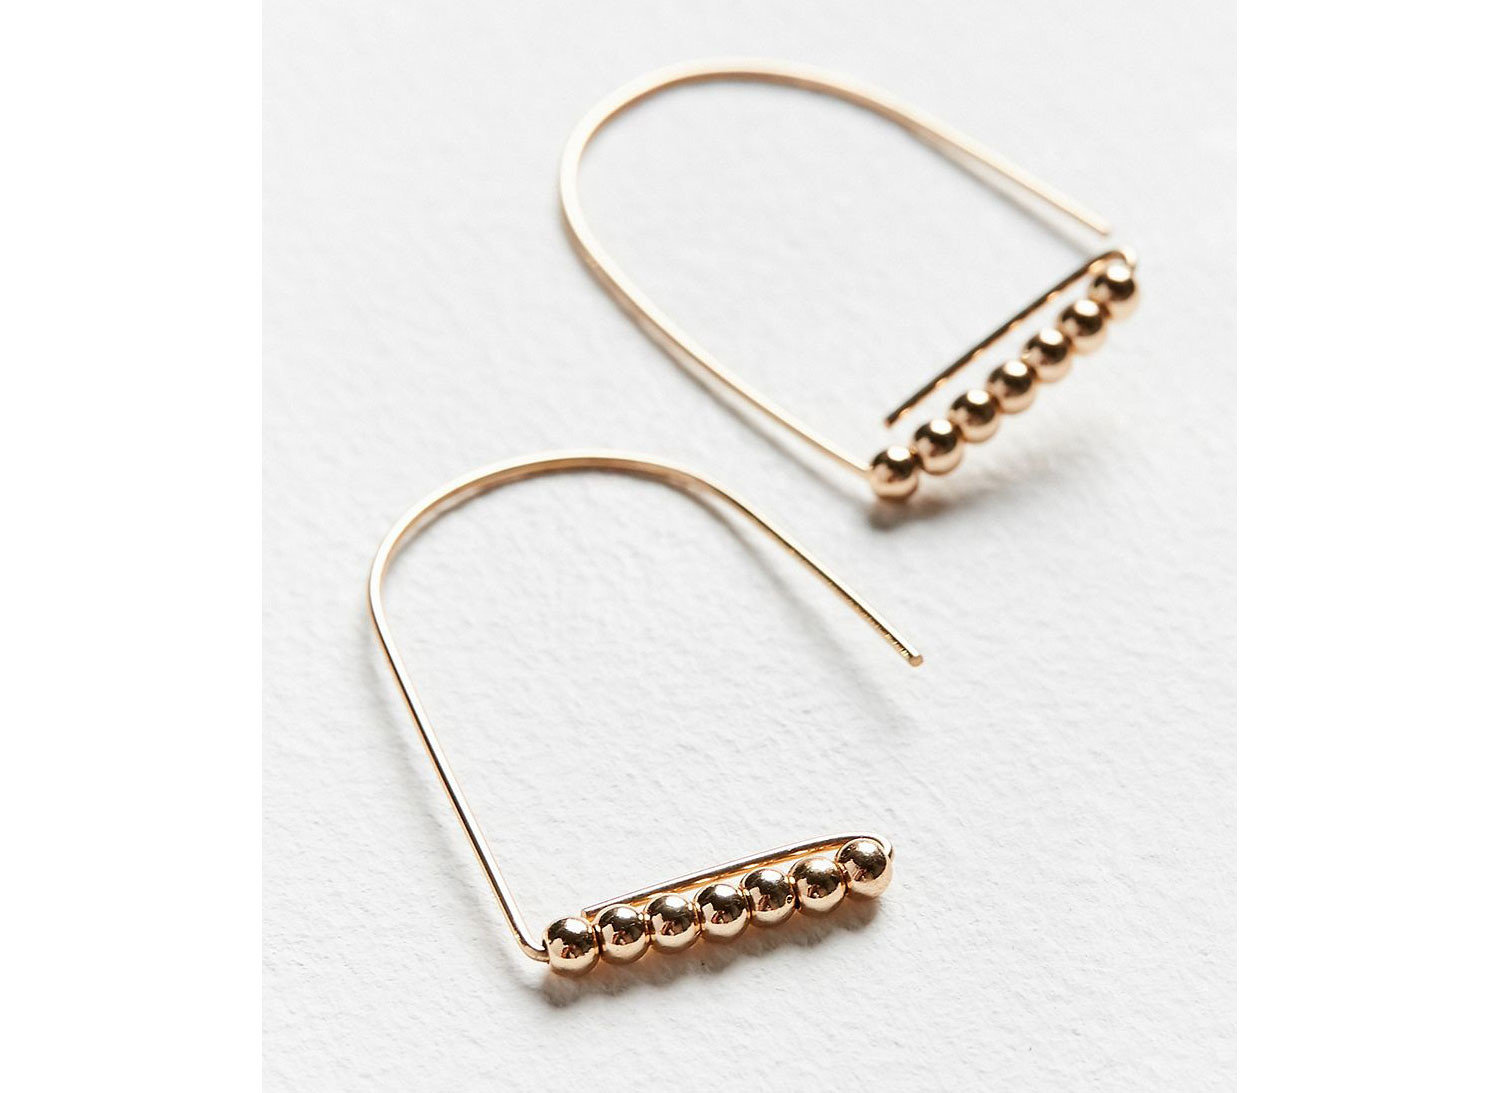 Style + Design Travel Shop jewellery fashion accessory accessory body jewelry chain jewelry making product design rectangle earrings metal enamel